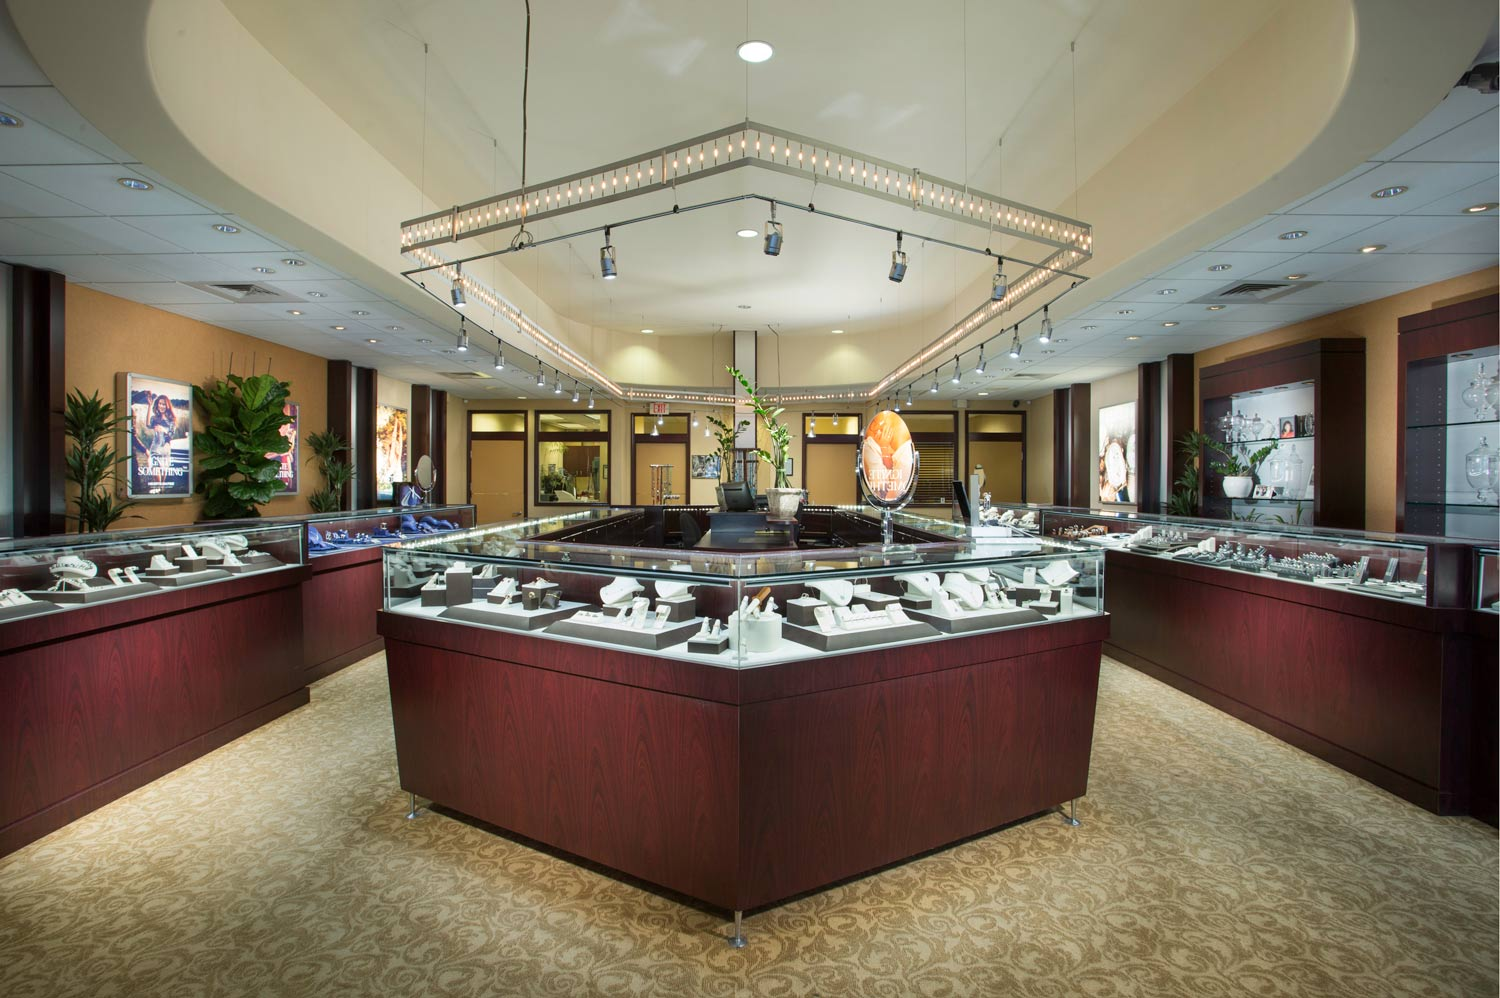 Architectural Photography of Jewelry Store Interior Taken By the Professional Architecture Photographers at Harper Point.